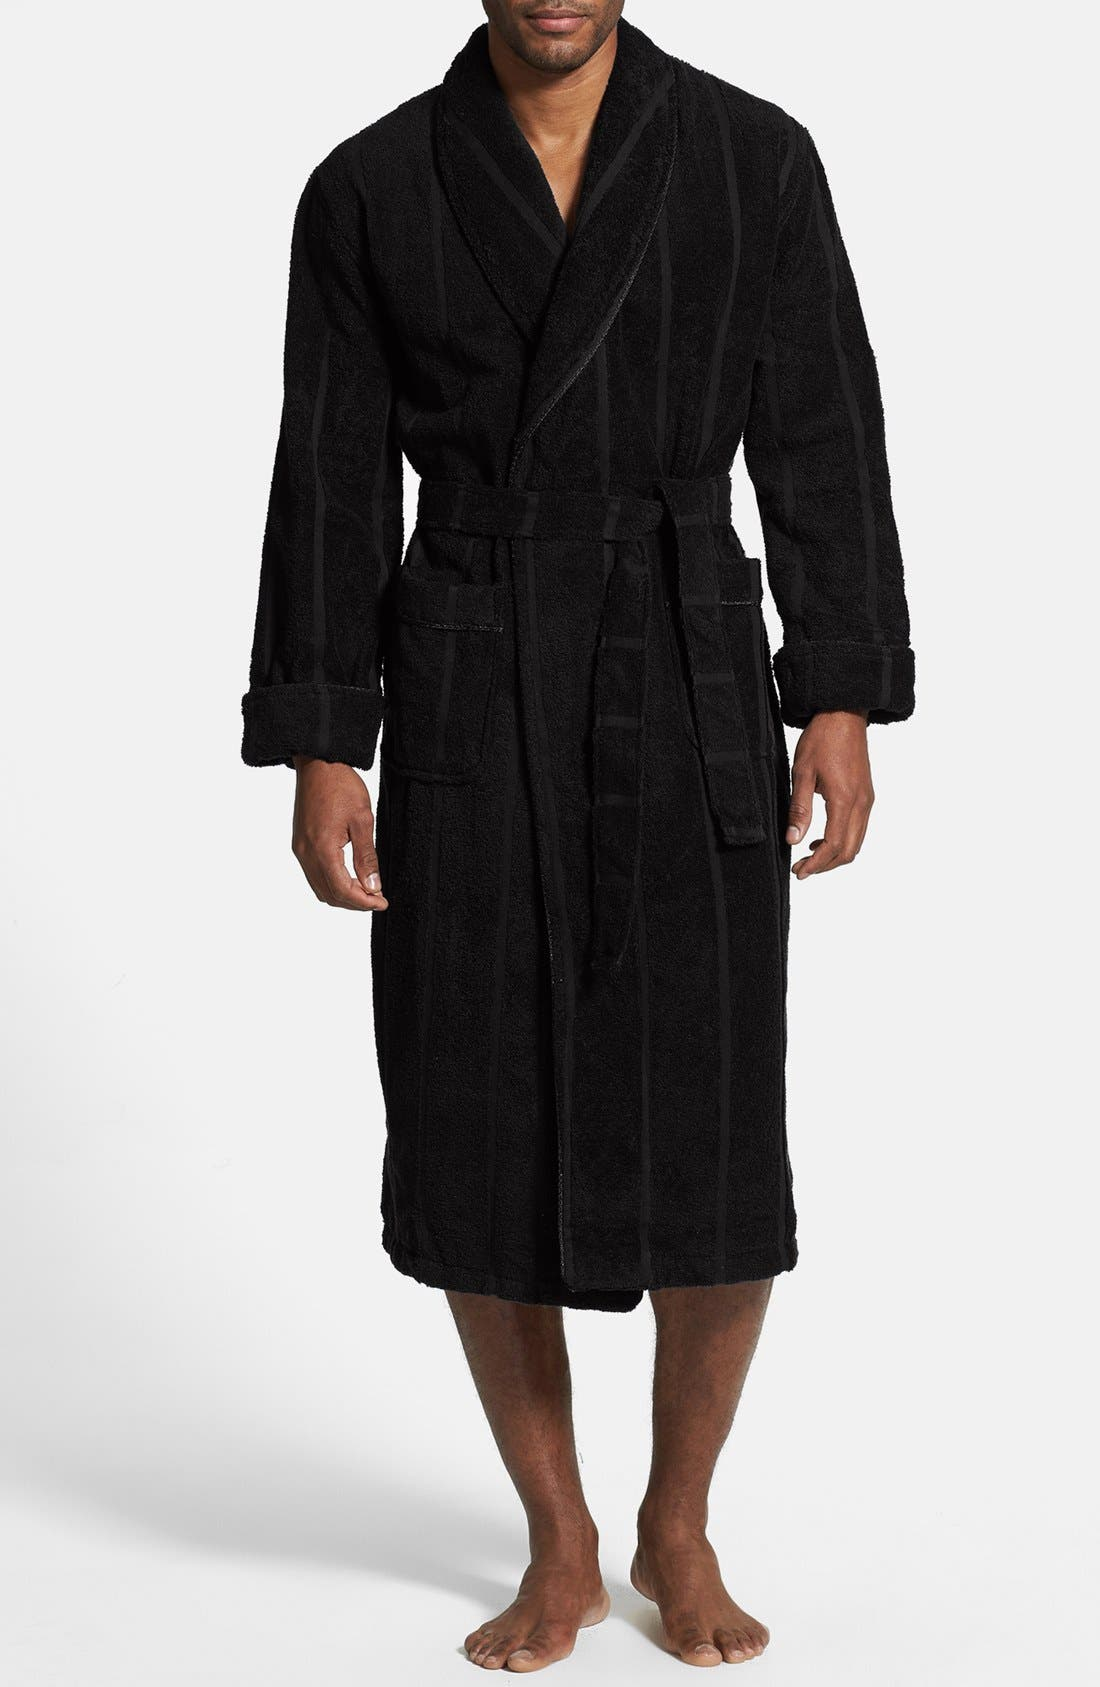 MAJESTIC INTERNATIONAL, Ultra Lux Robe, Main thumbnail 1, color, BLACK